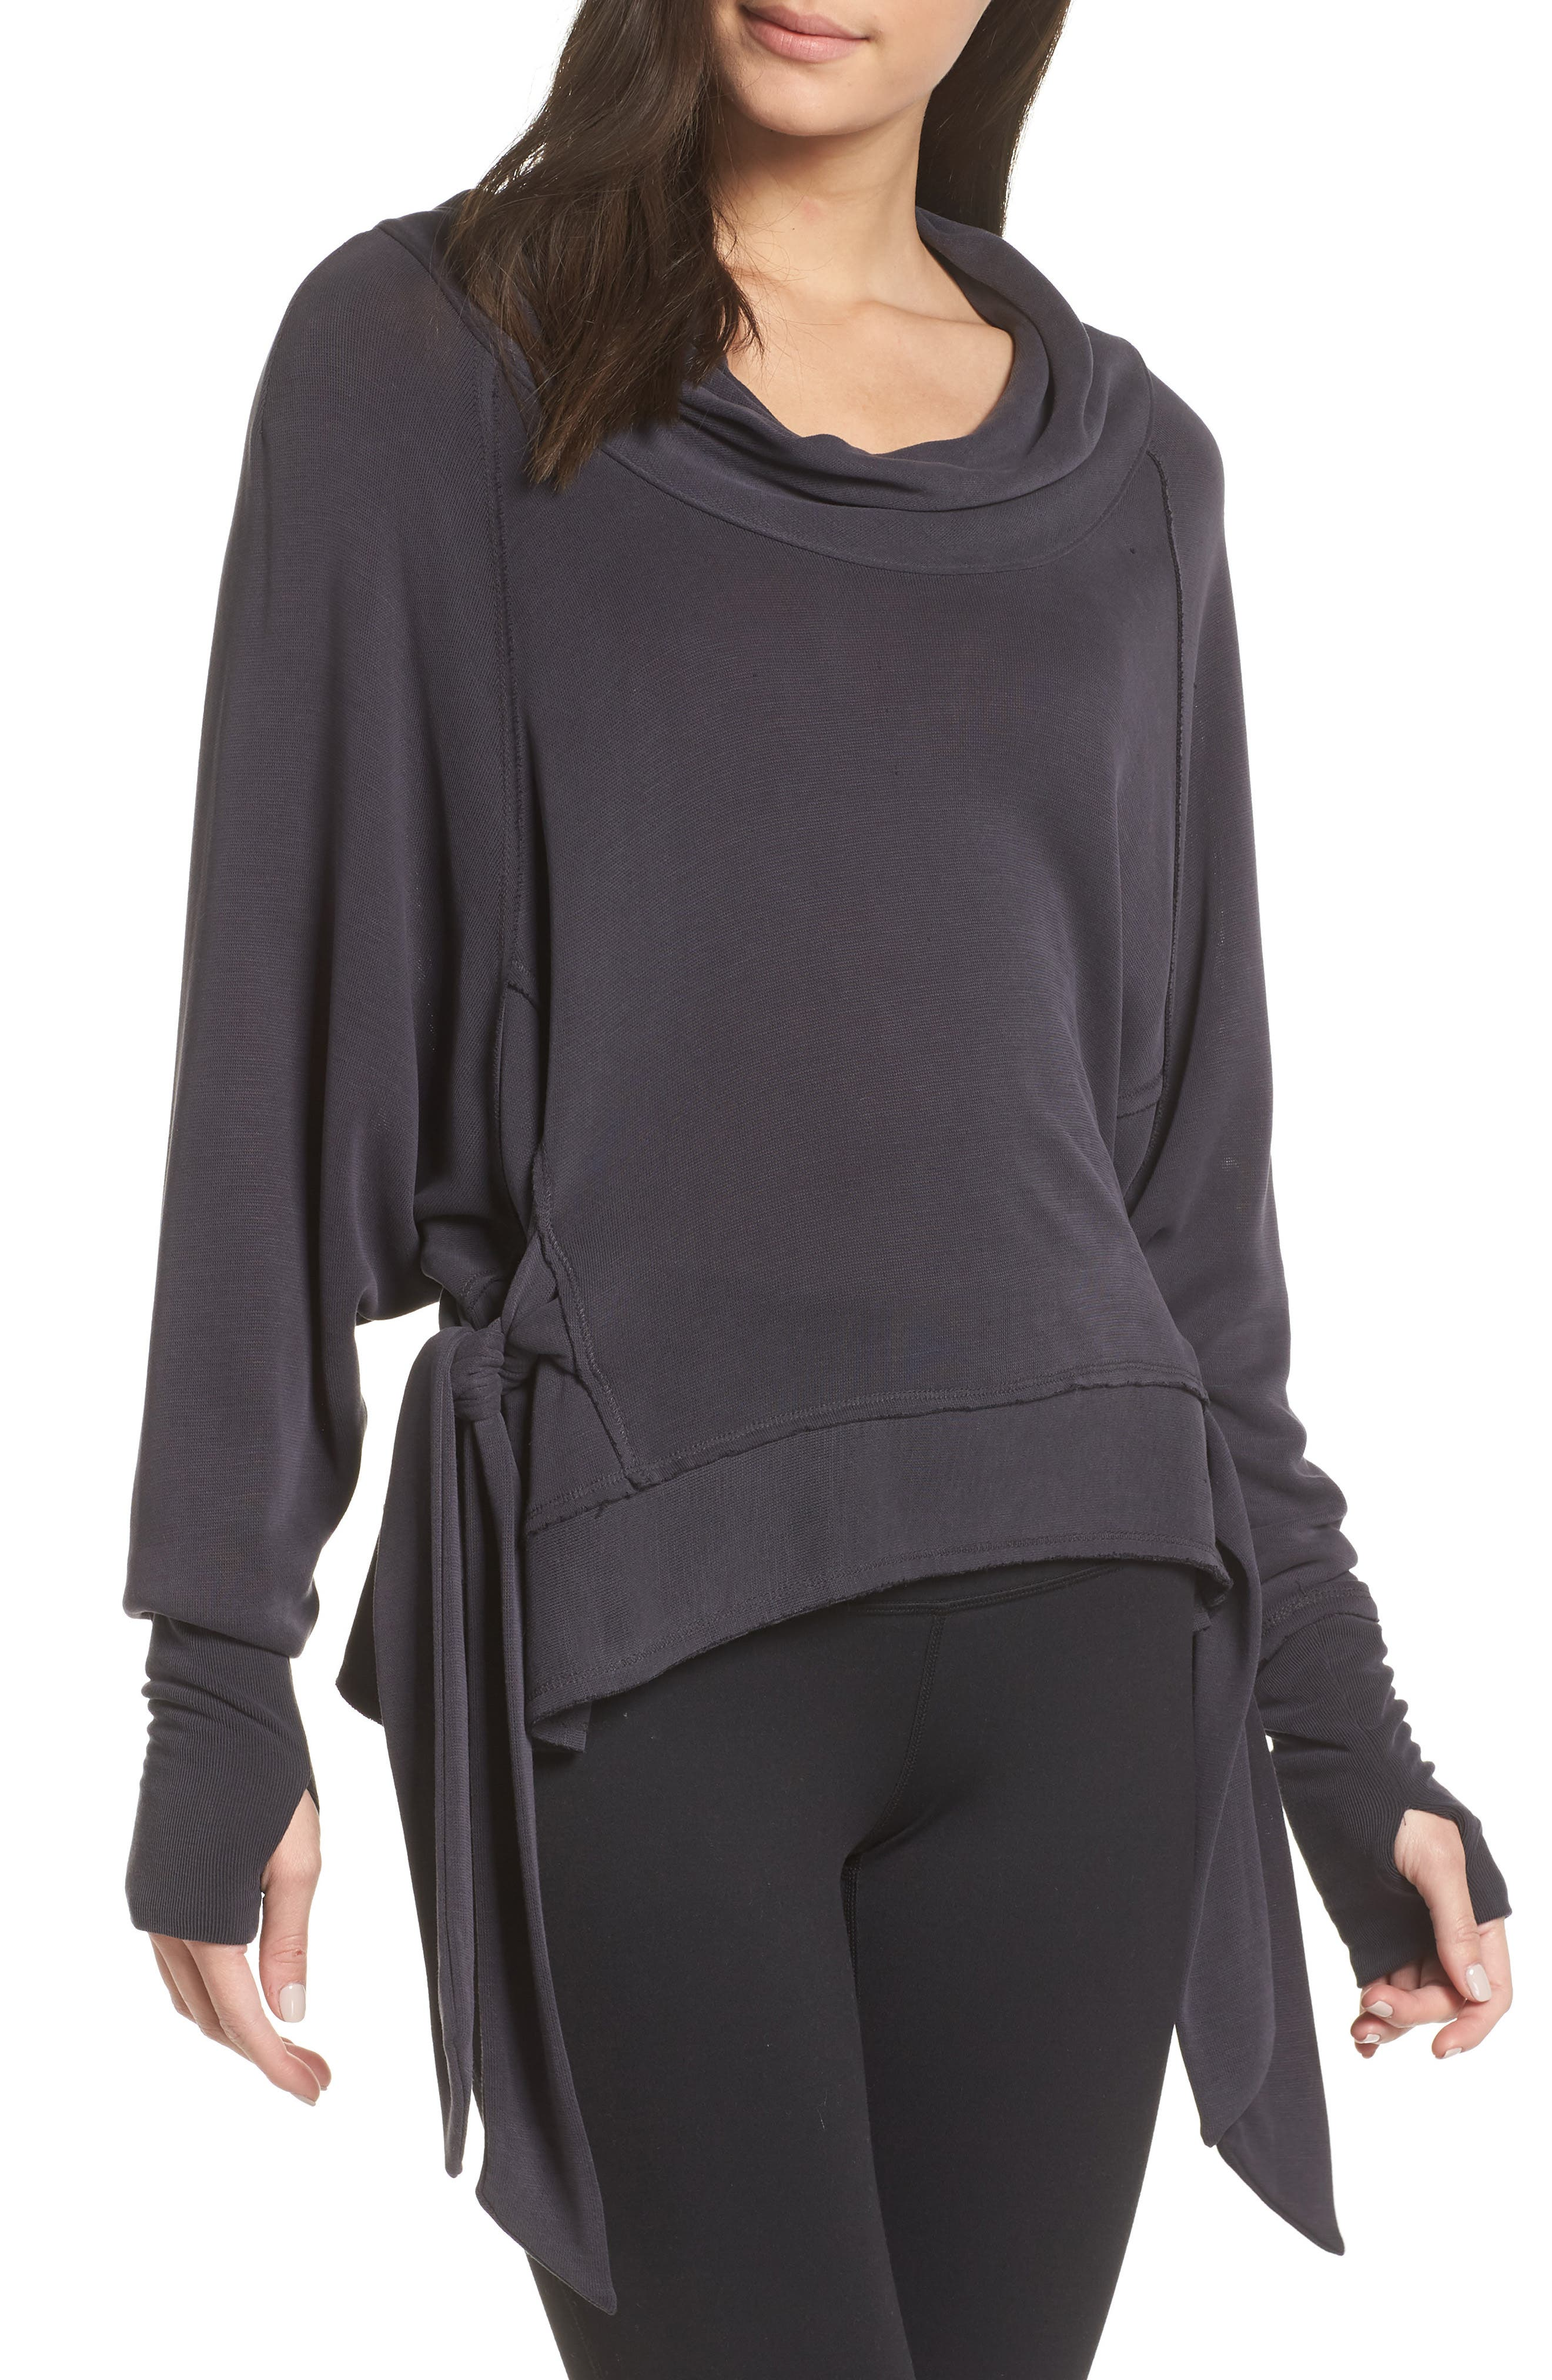 Free People FP Movement Sweet Flow Pullover Sweater,                         Main,                         color, BLACK